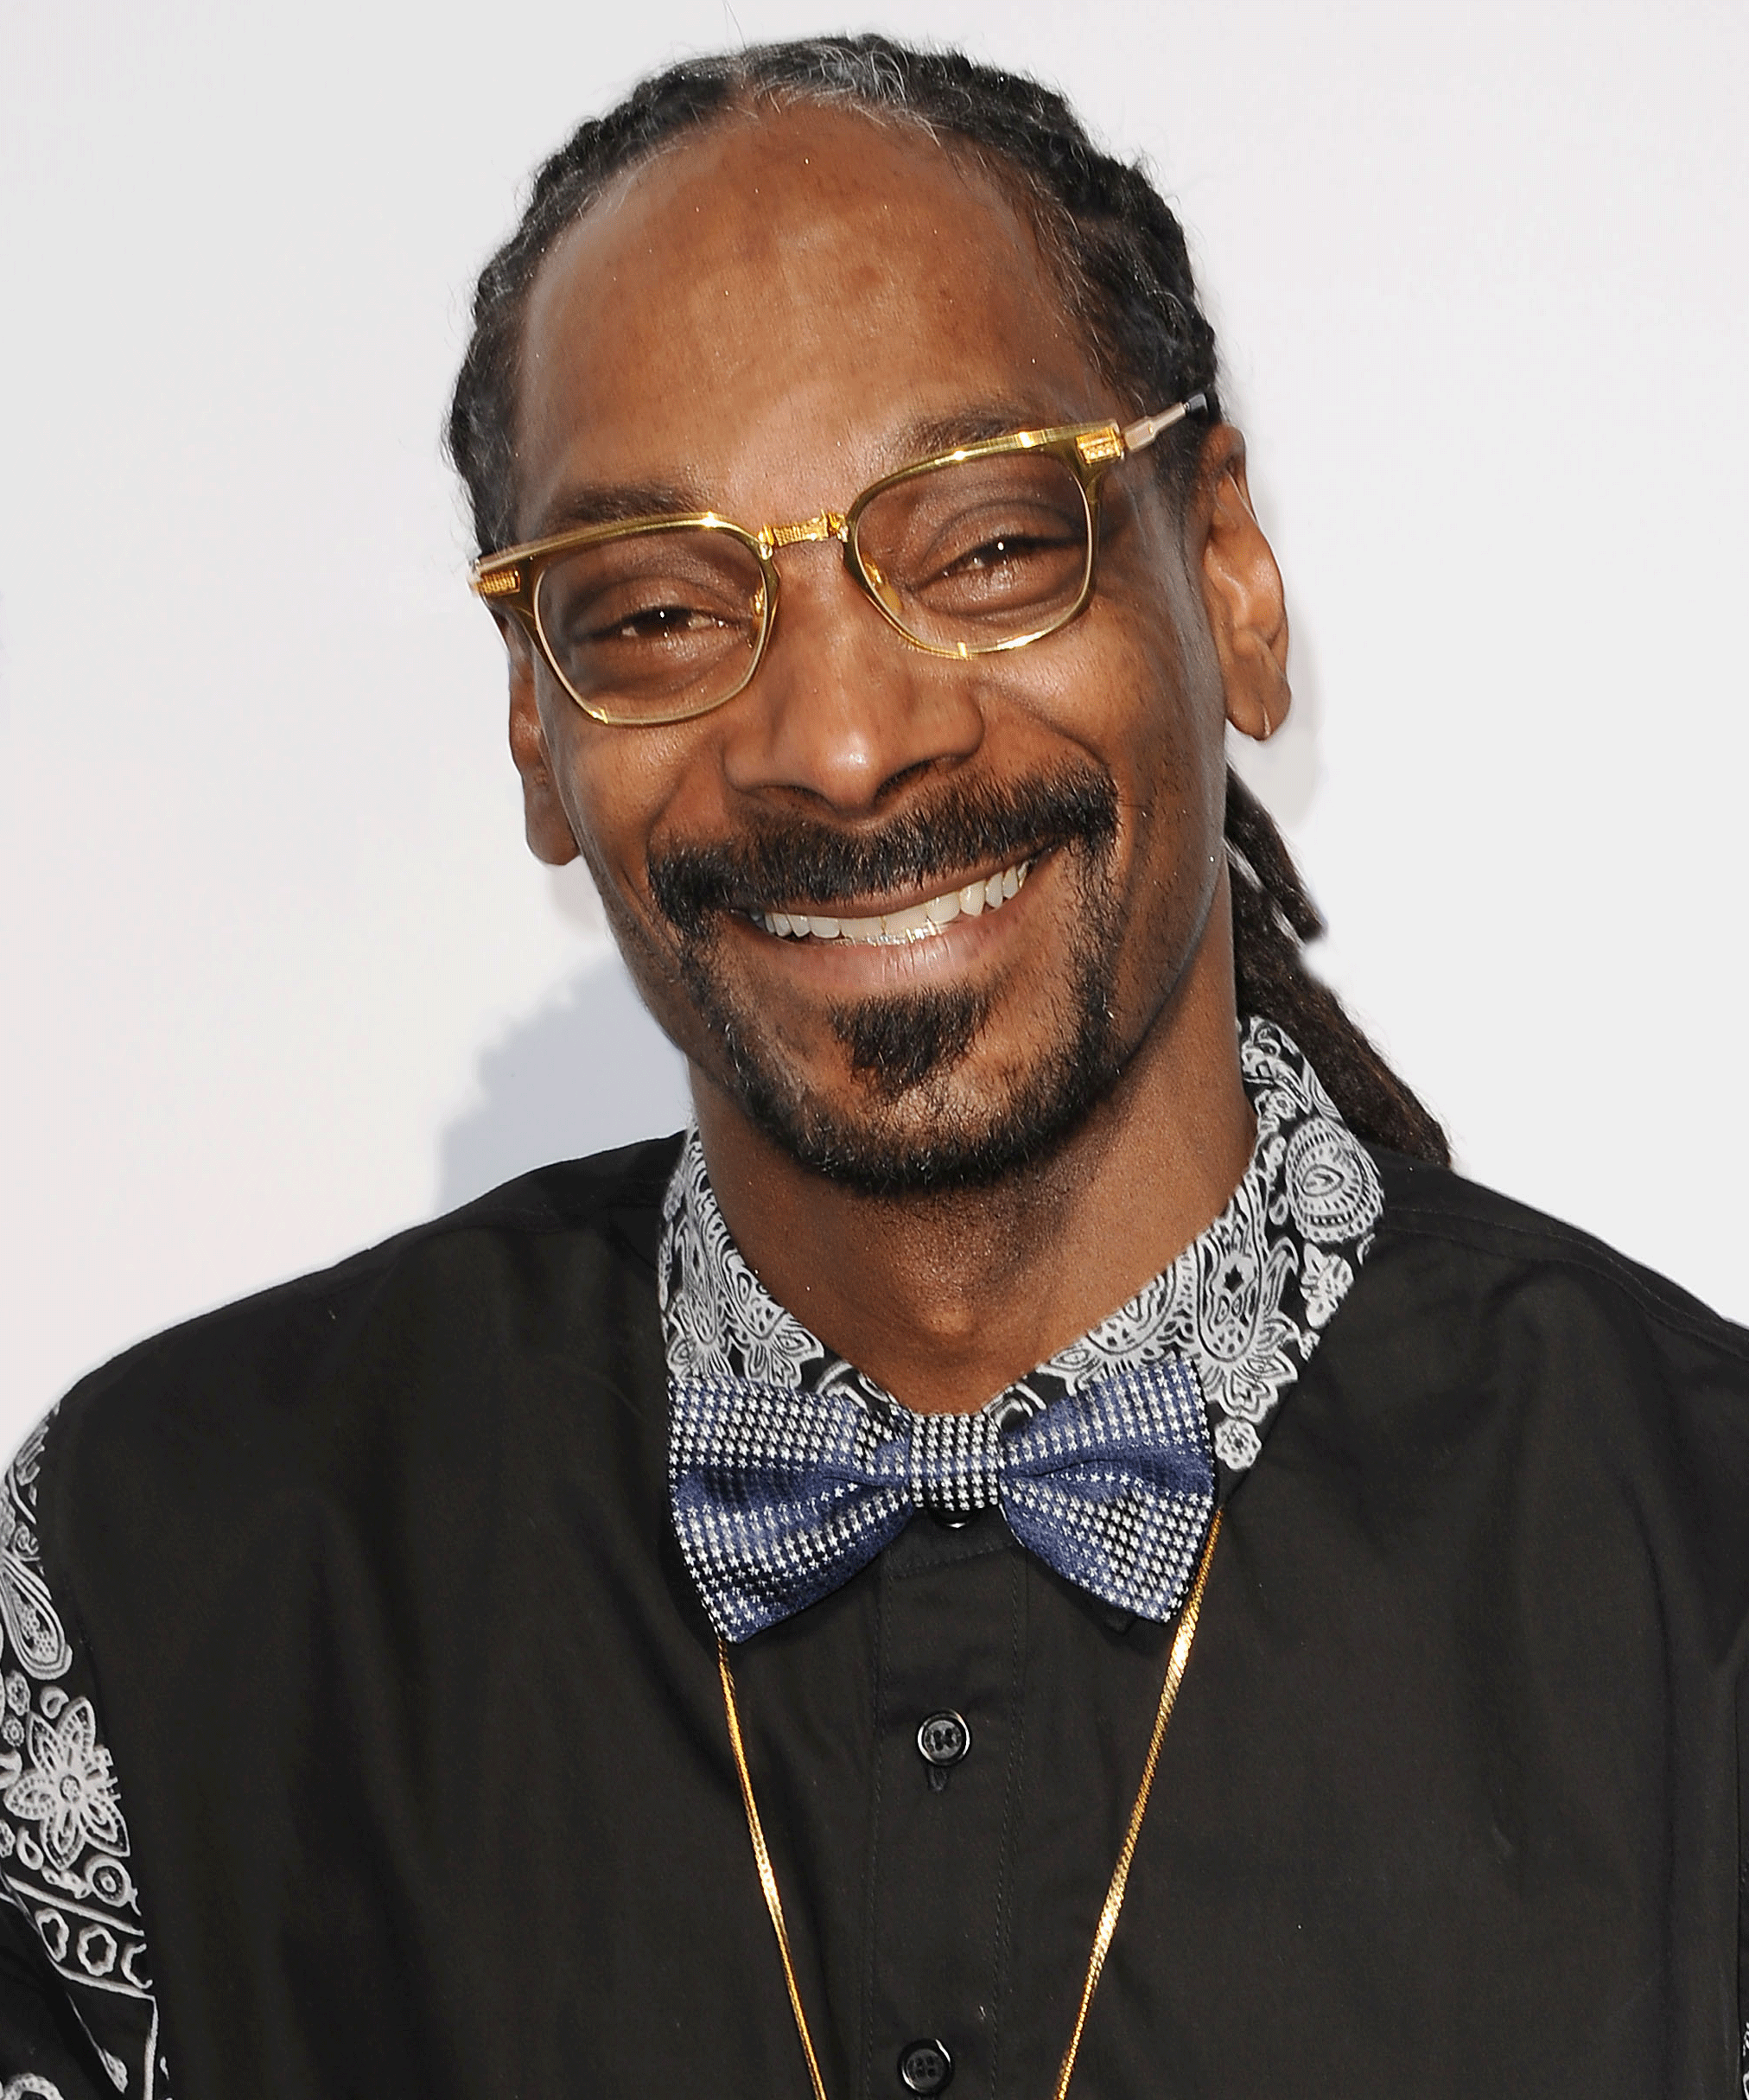 Snoop Dogg Shares The Ultimate Spring Break Cocktail Recipe Recipe Snoop Dogg Snoop Doggy Dogg Snoop